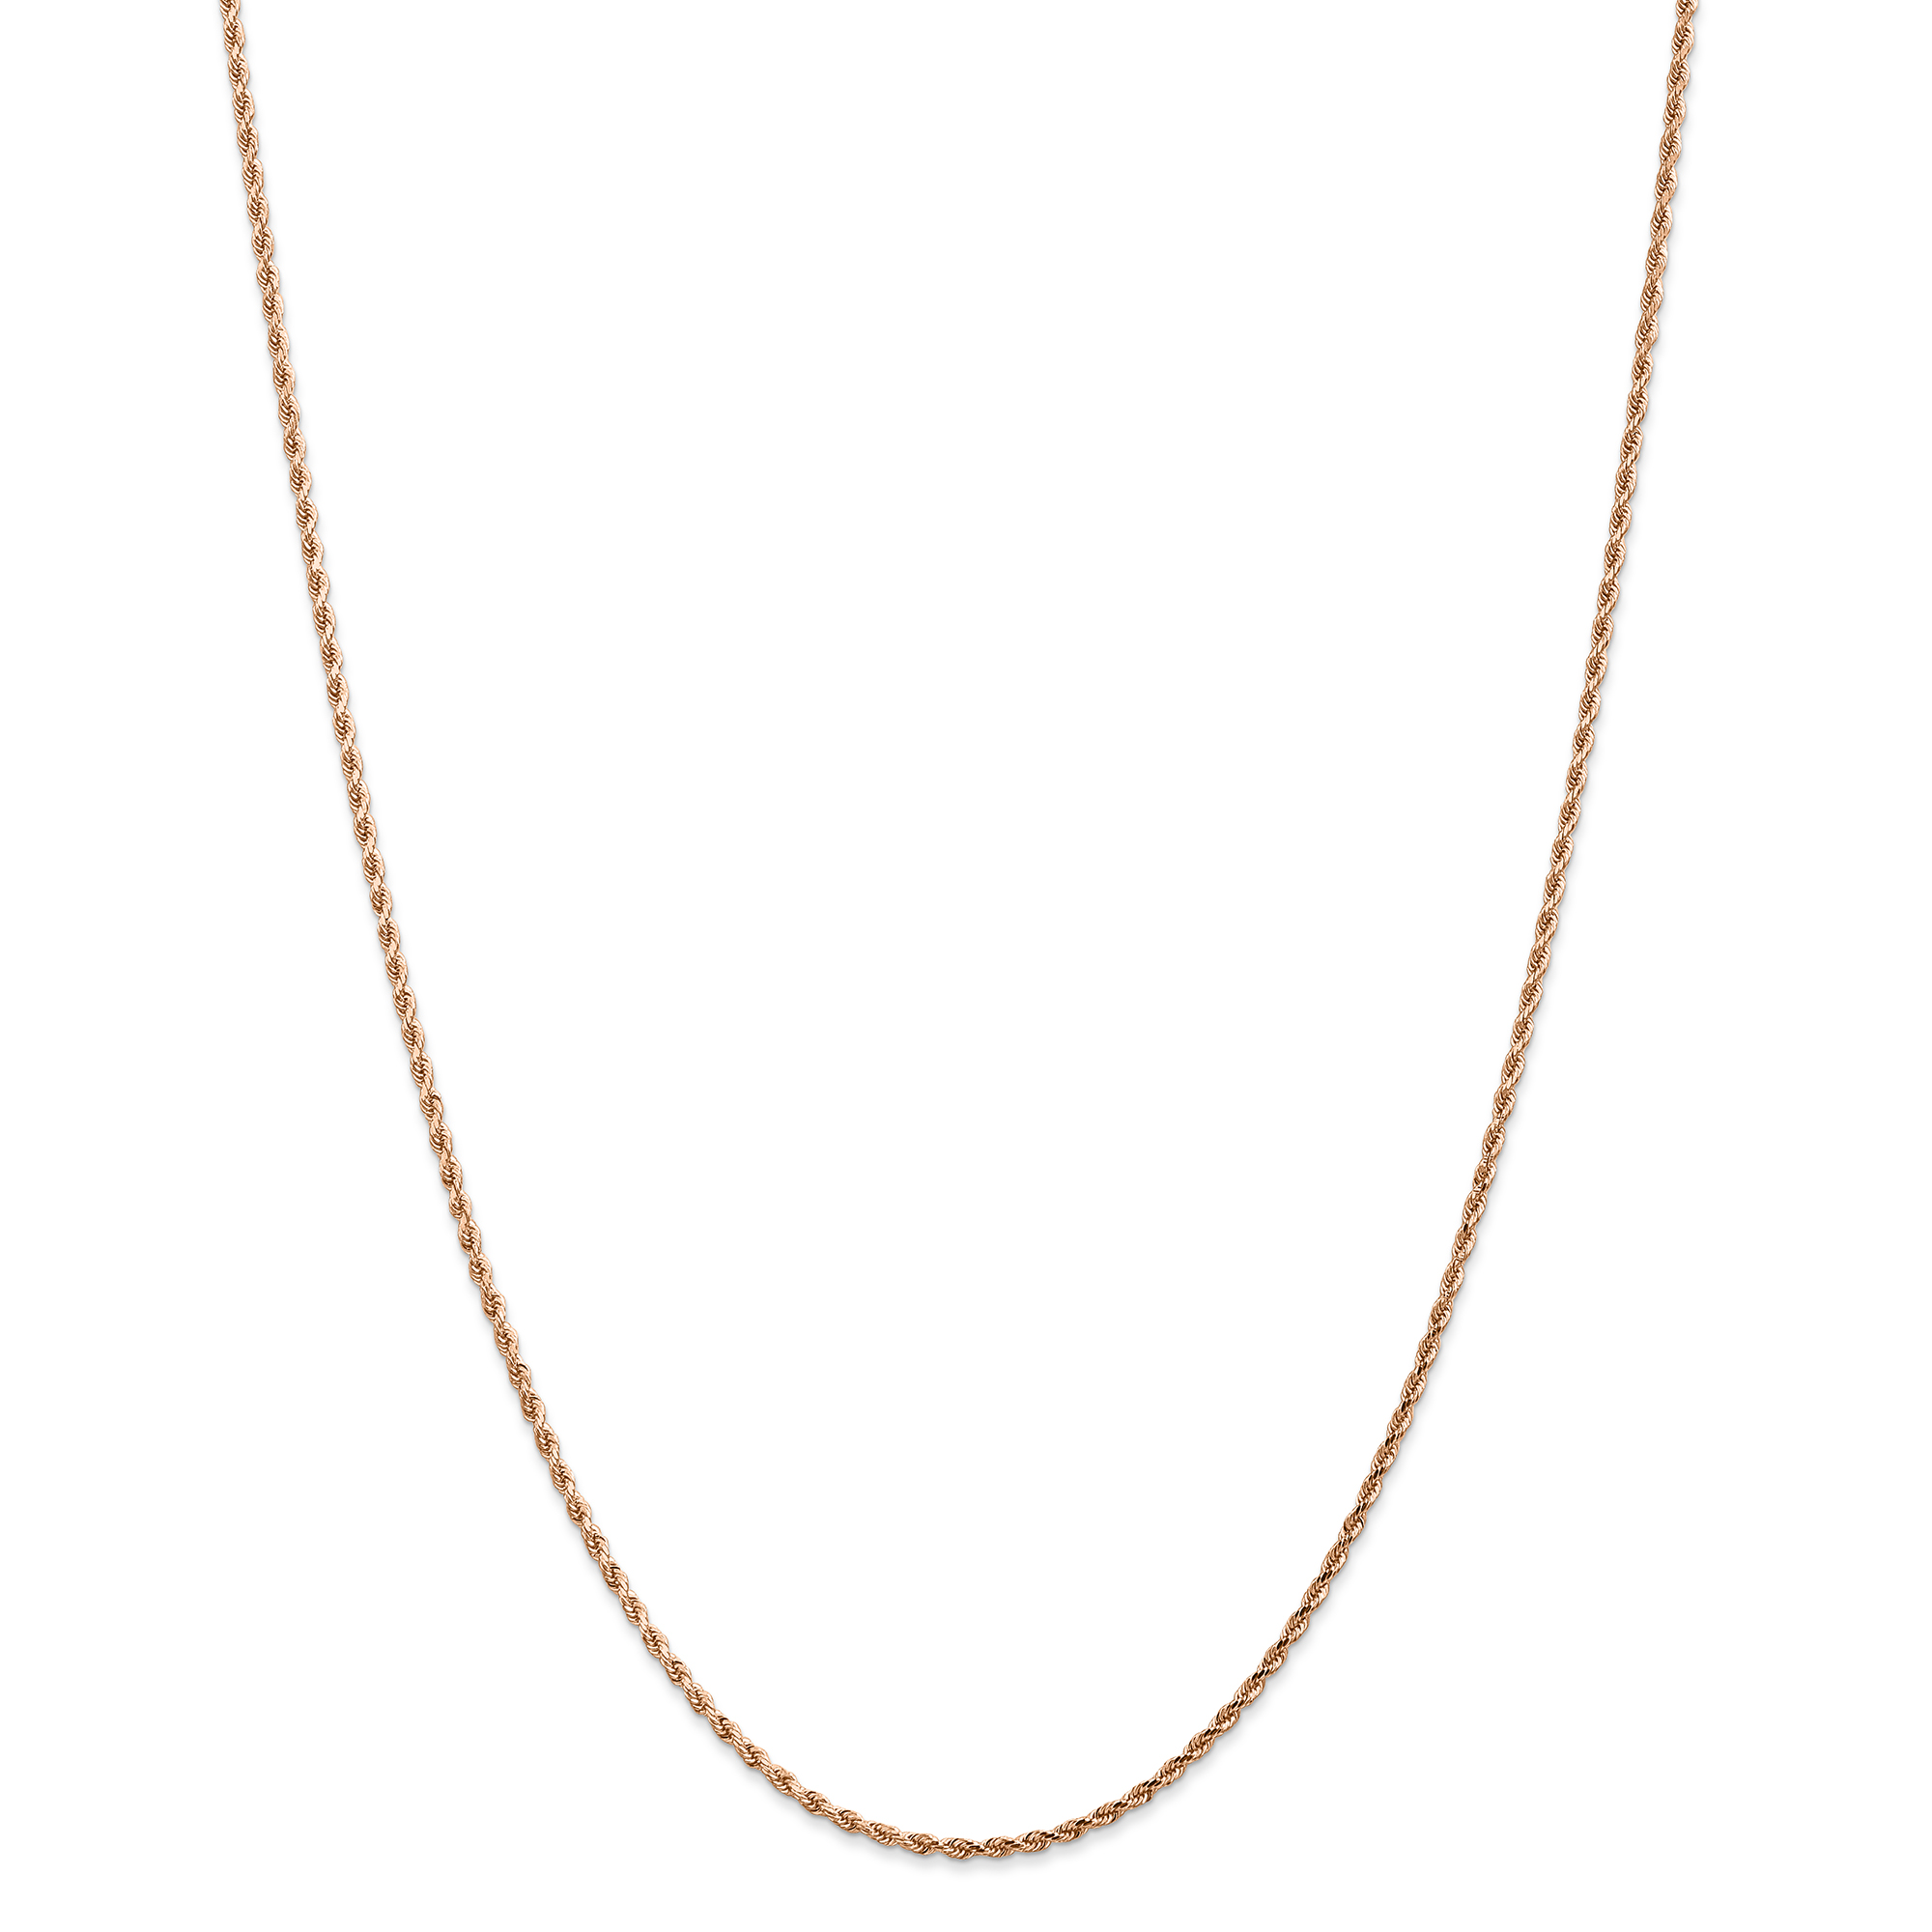 Roy Rose Jewelry Leslies 14K Rose Gold 1.75mm Diamond Cut Rope Chain Necklace ~ Length 24'' inches by Roy Rose Jewelry